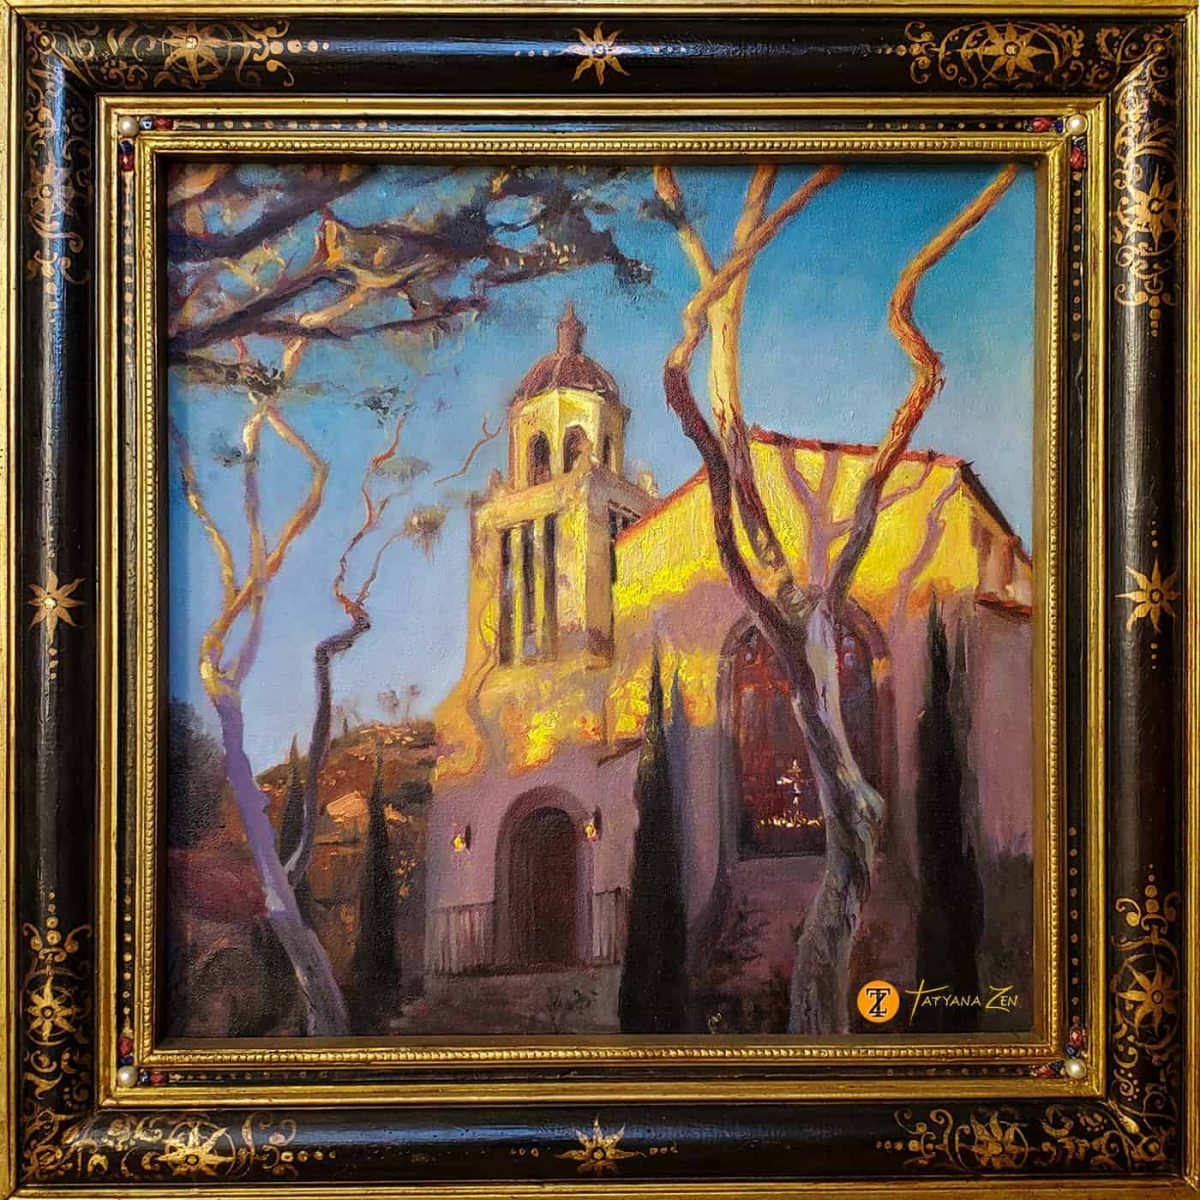 Laguna Presbyterian Church Original Painting by Tatyana Zen